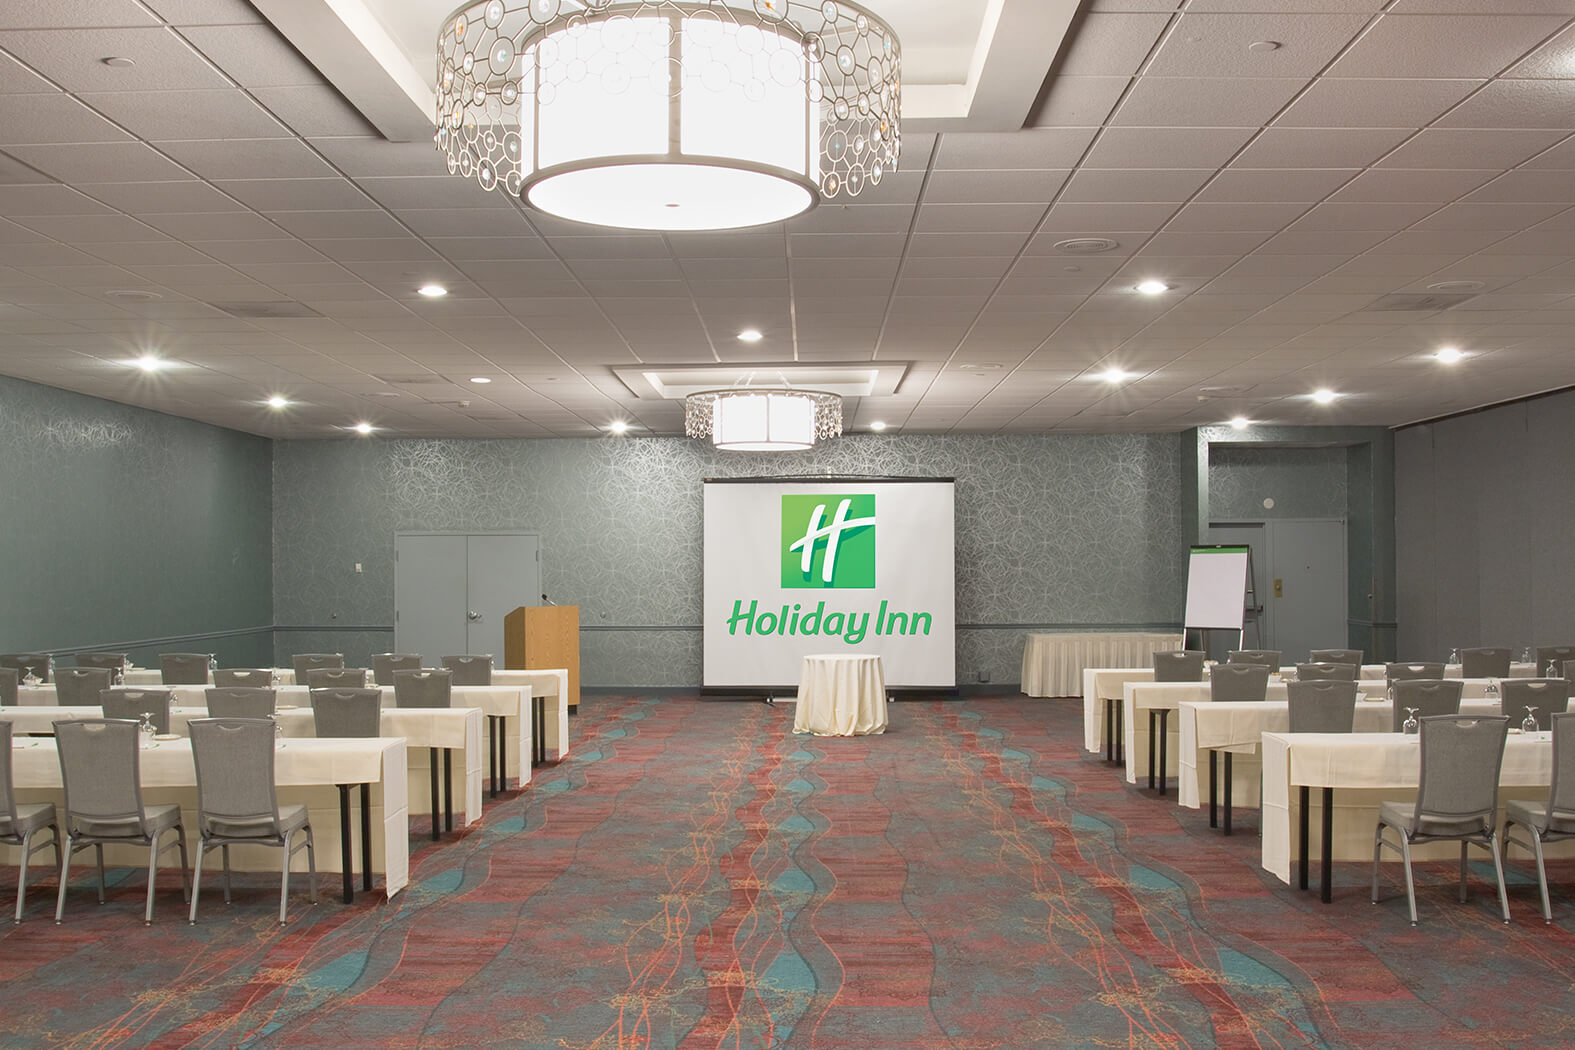 Holiday Inn Events and Meetings